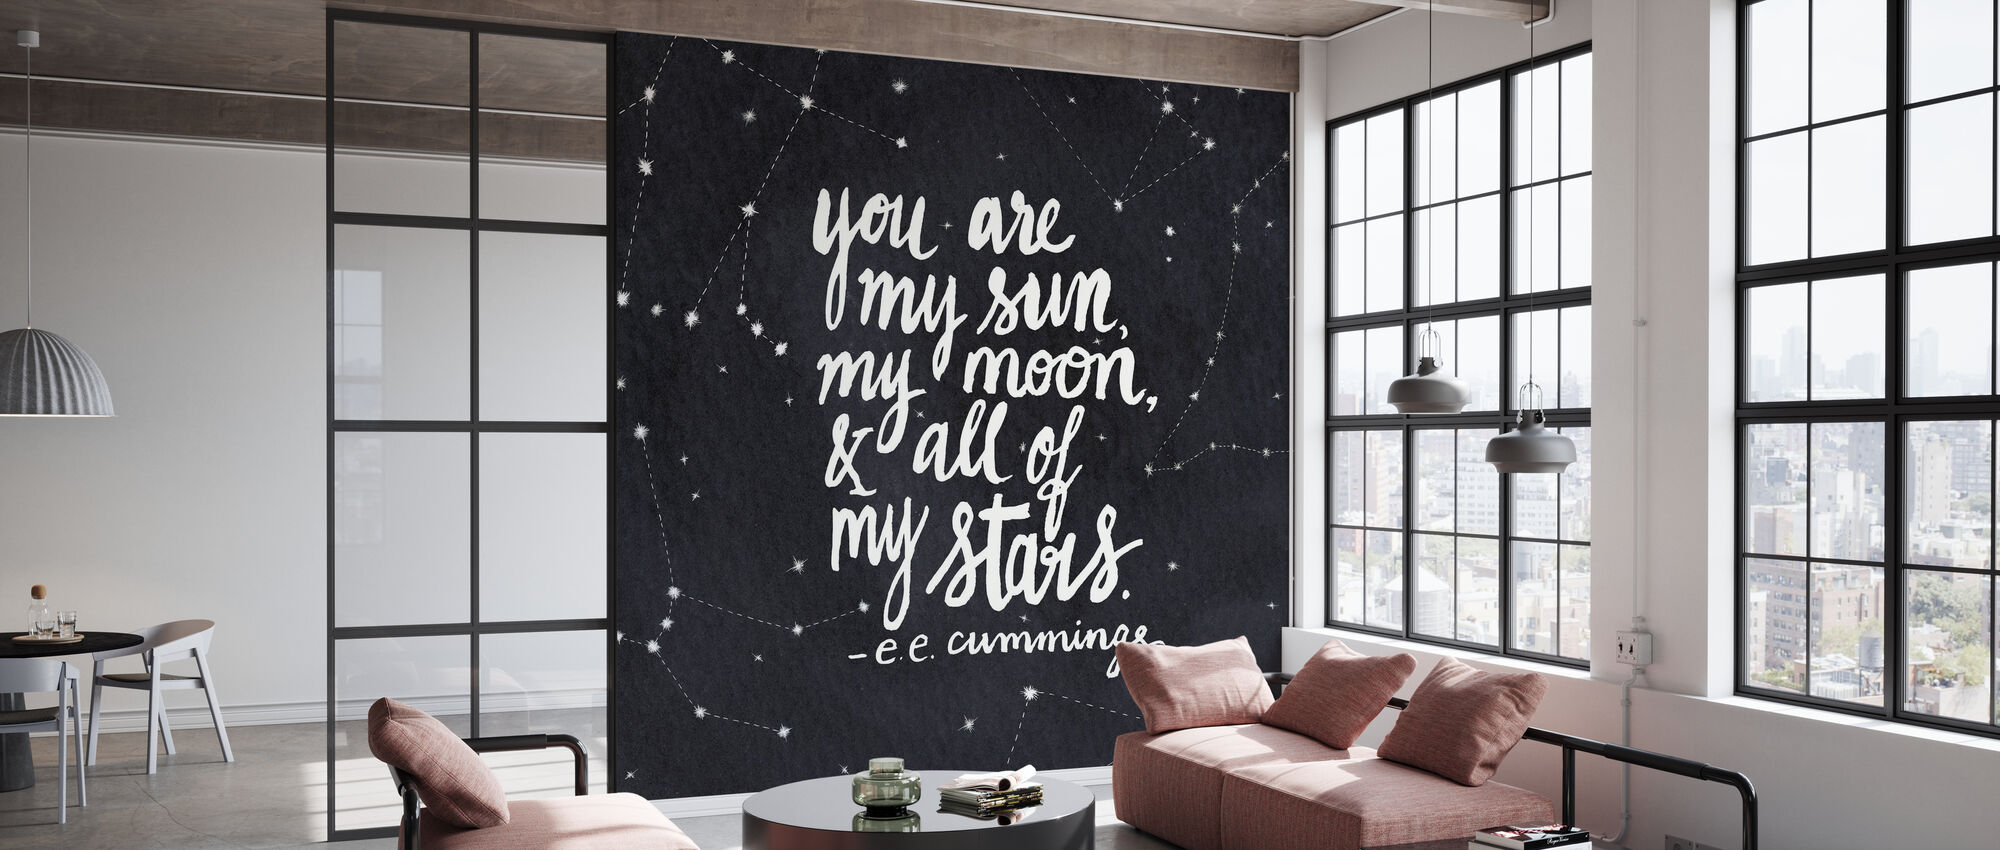 You Are My Sun - Wallpaper - Office